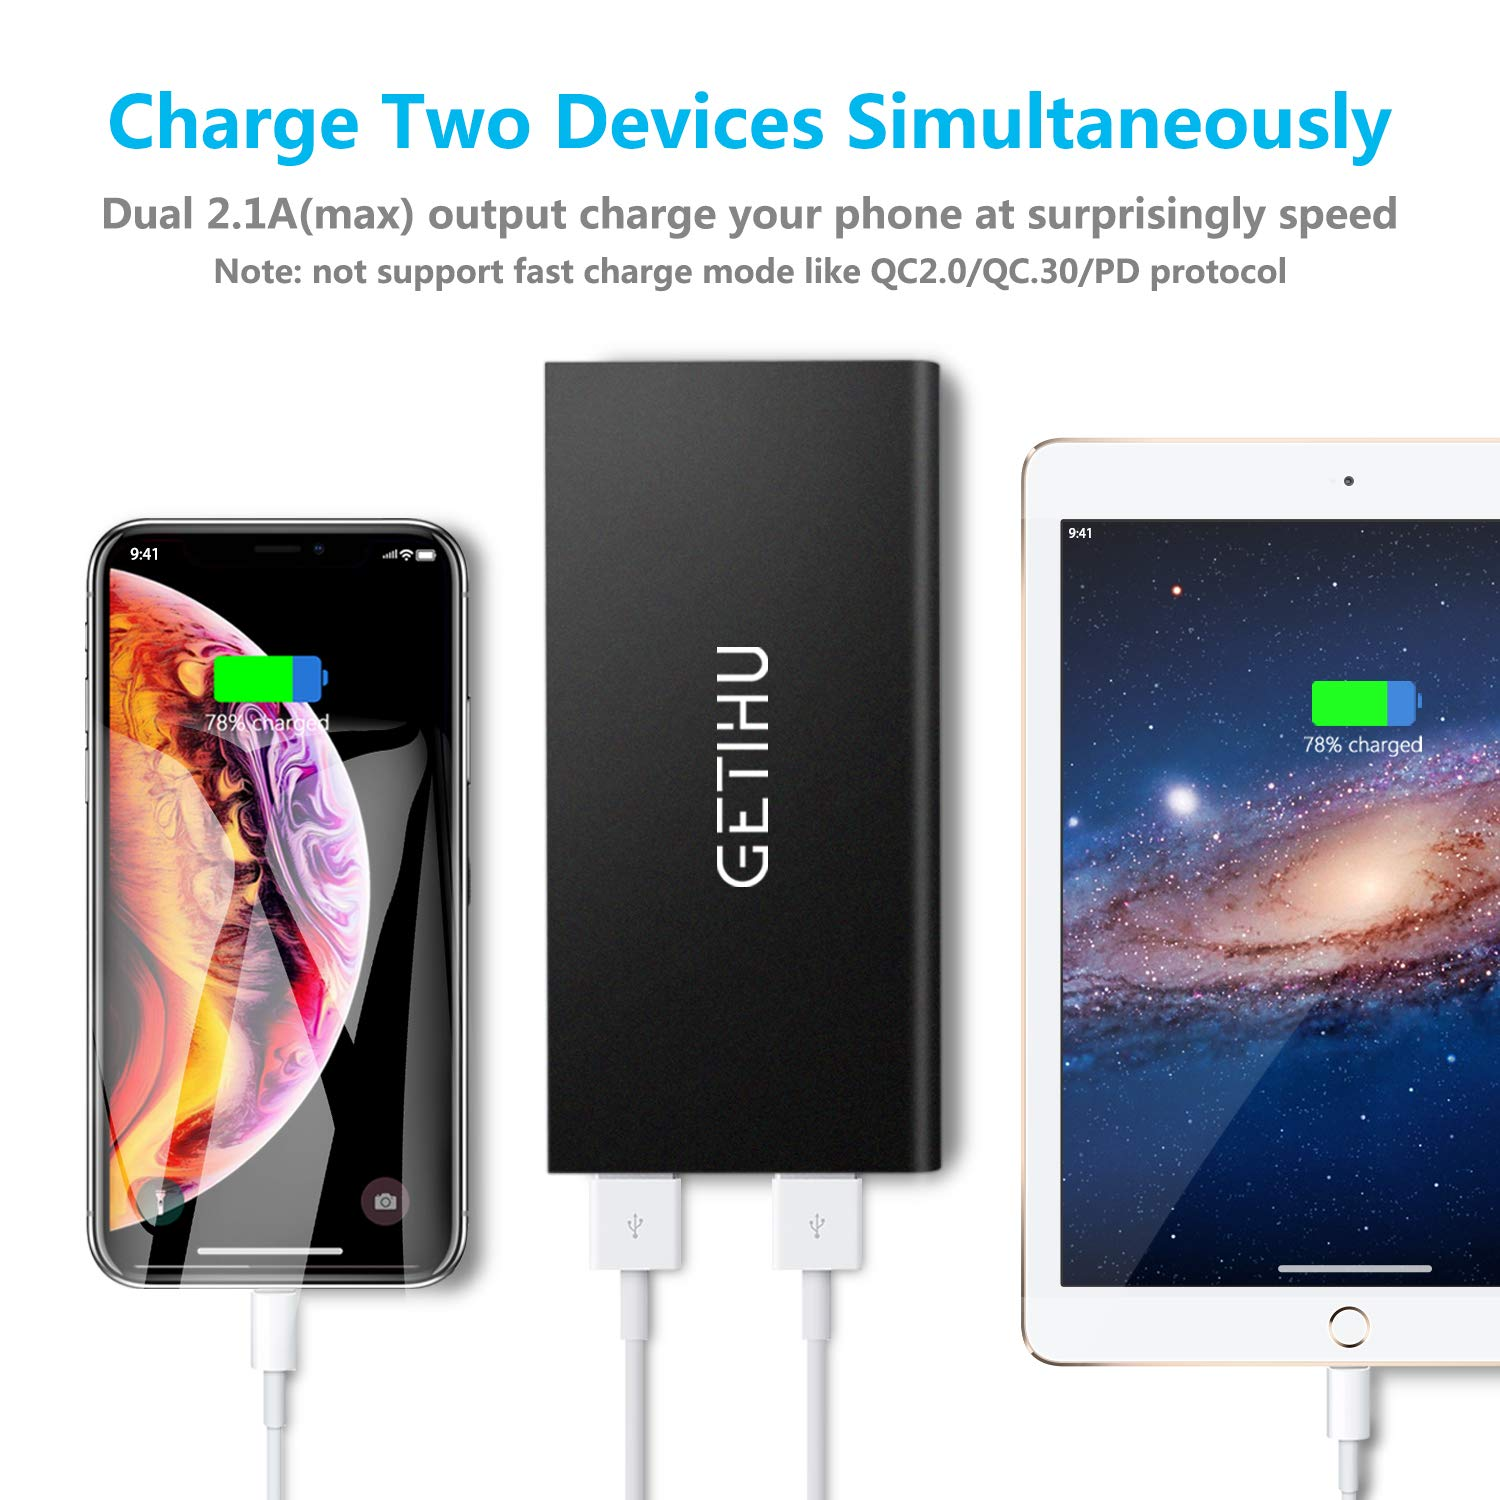 Getihu Phone Charger 10000mah Portable Power Bank Ultra Simplelm317solarchargerv10schematic Slim Led Flashlight Mobile External Battery Backup Thin 2 Usb Ports Powerbank For Iphone